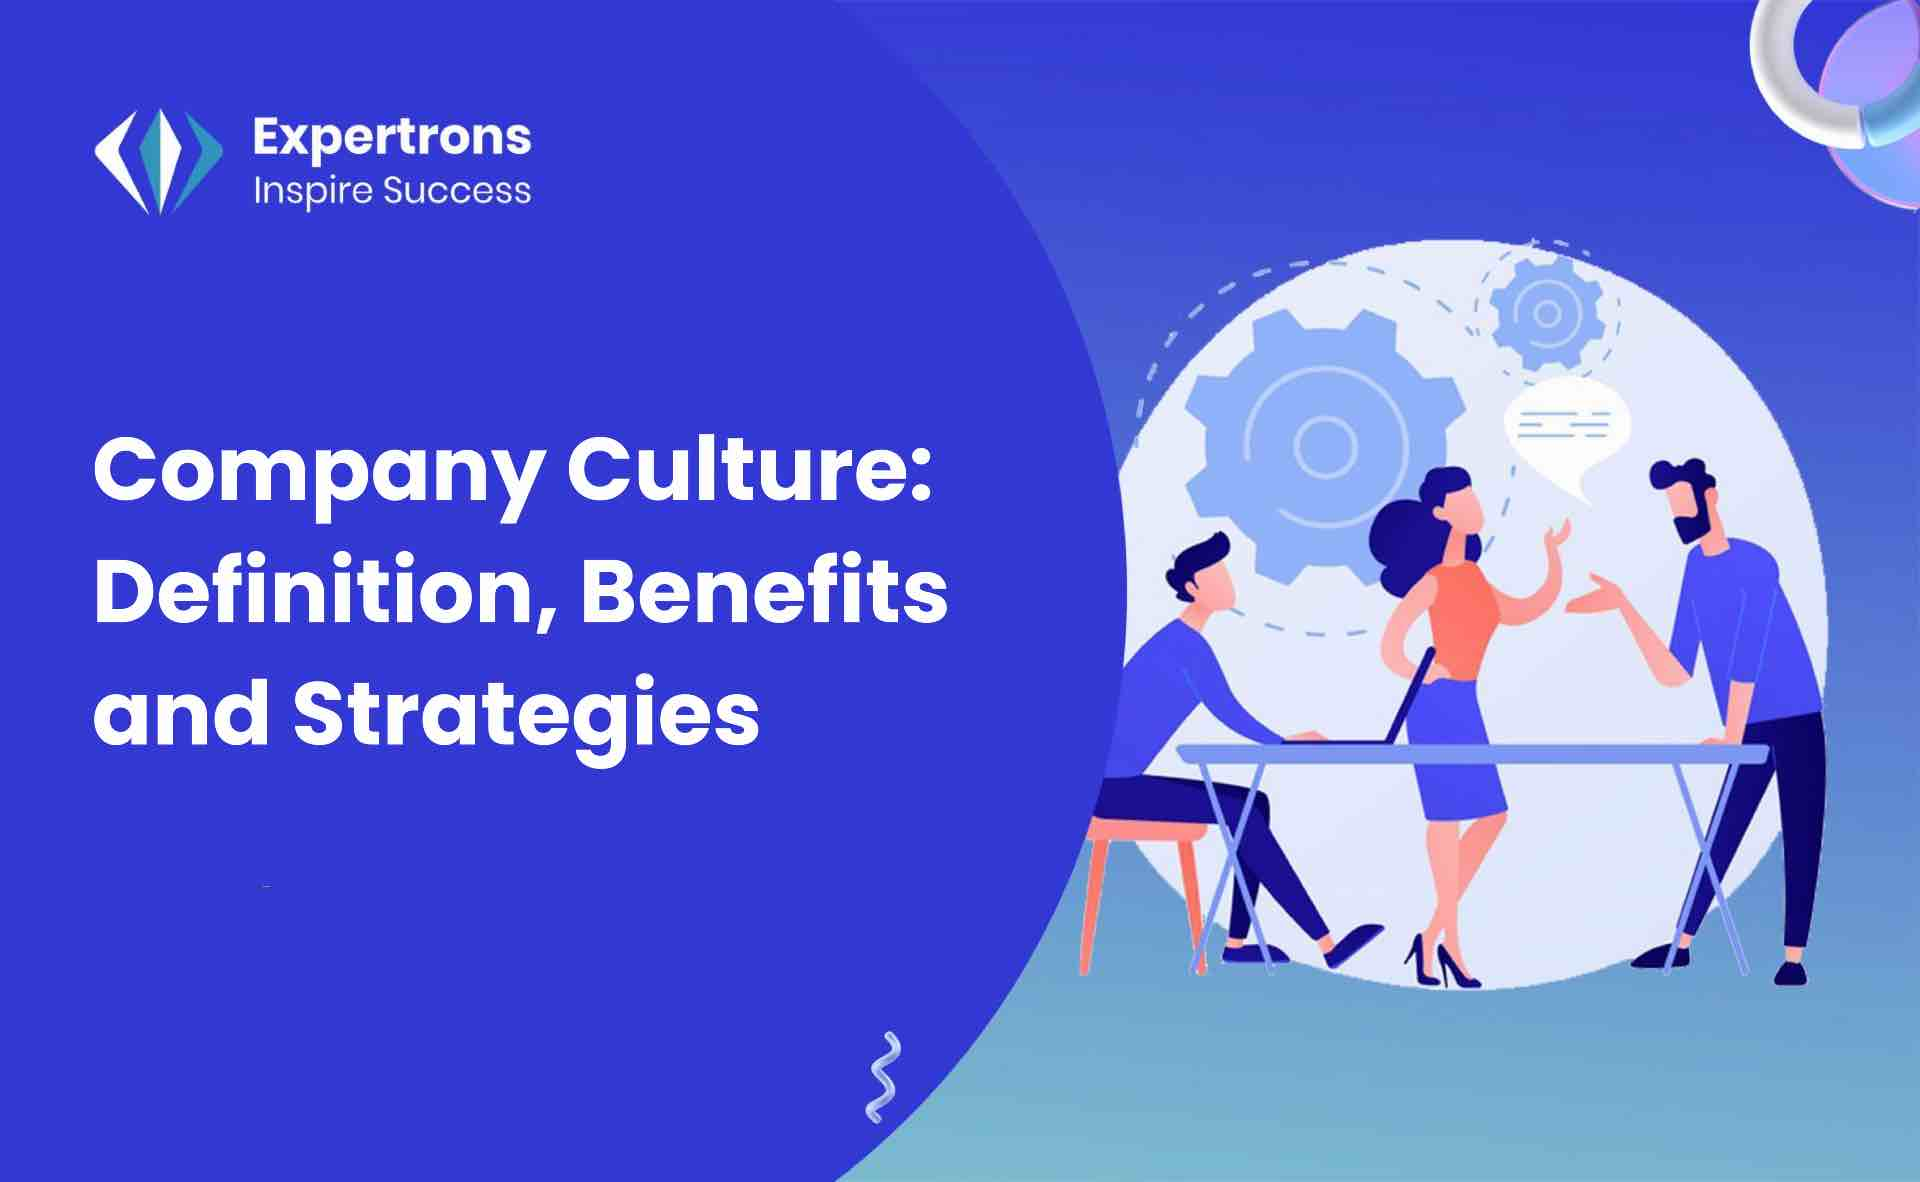 Company Culture, Workplace Culture, Organizational Cultures, Company Relationships, Employee Relationswork Culture, Organizational Culture and Leadership, Employer Employee Relationship